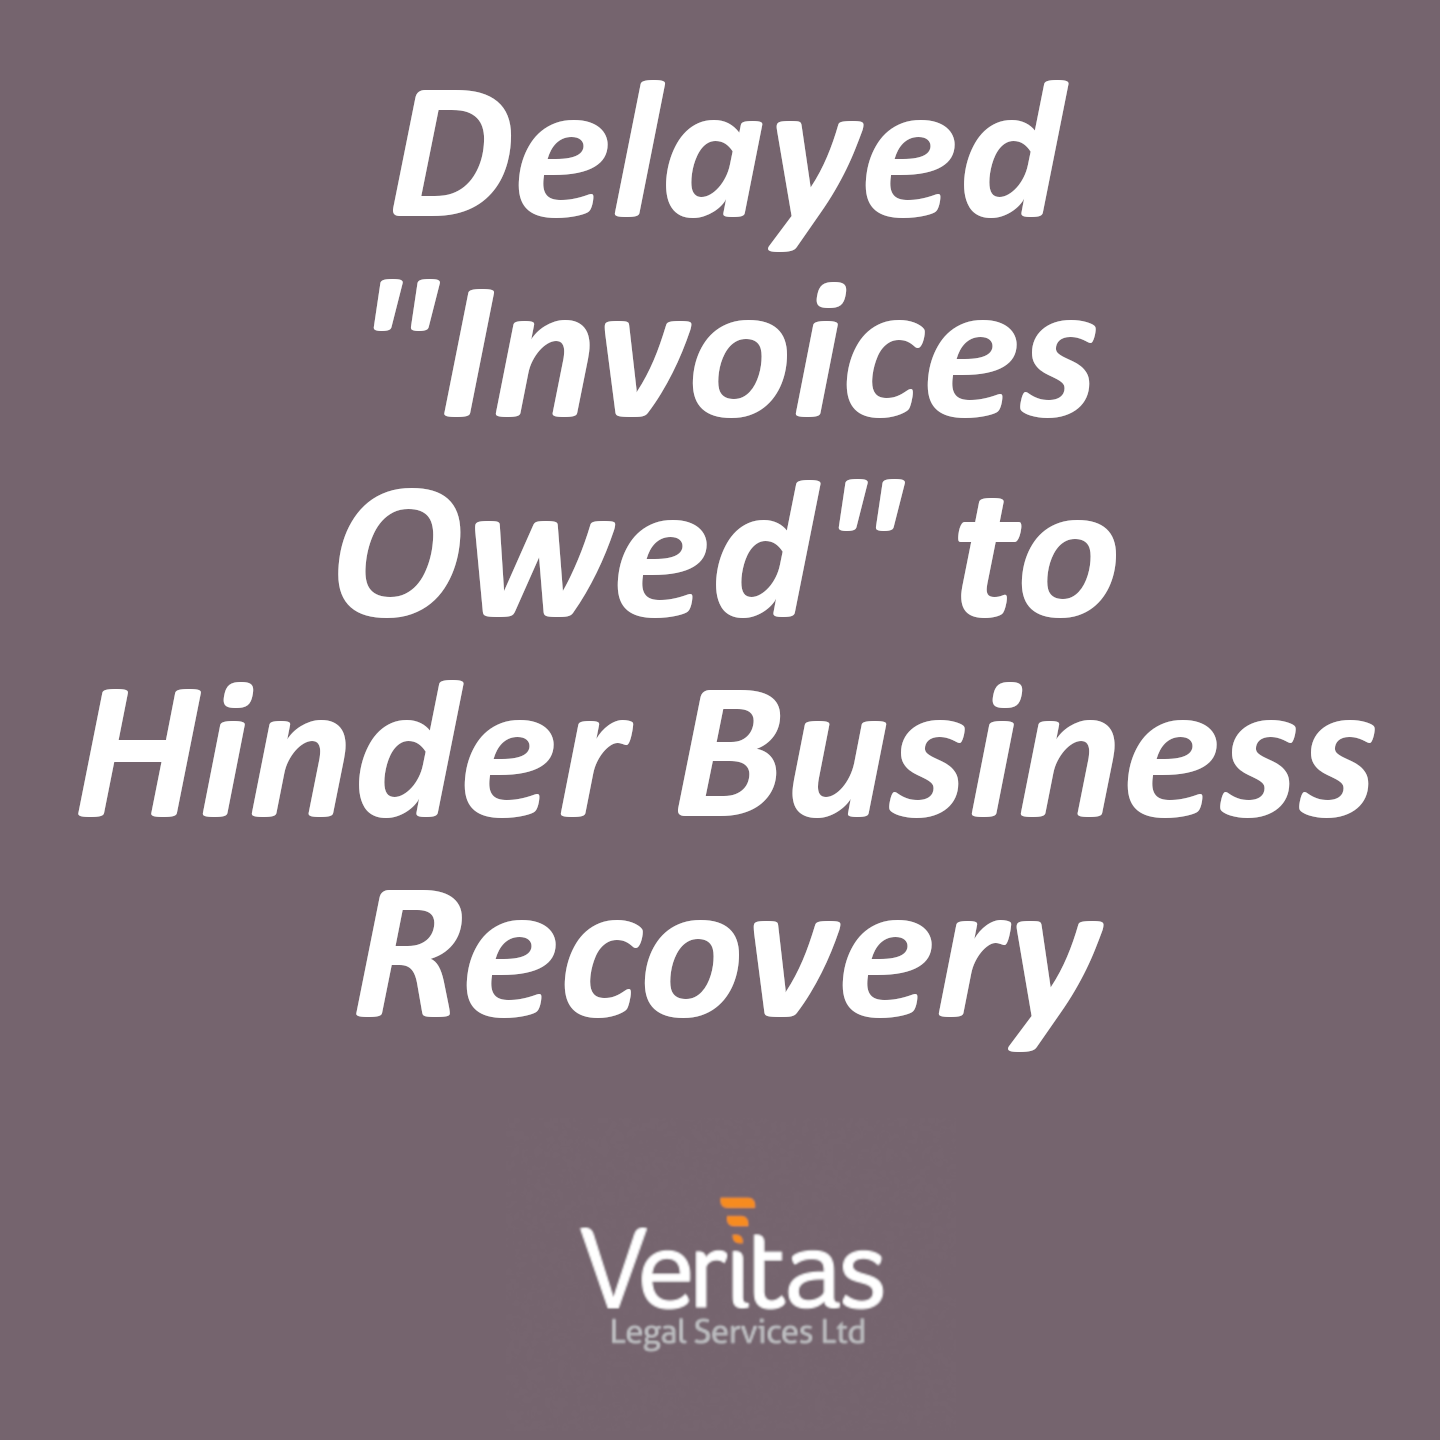 "Delayed ""Invoices Owed"" to Hinder Business Recovery"